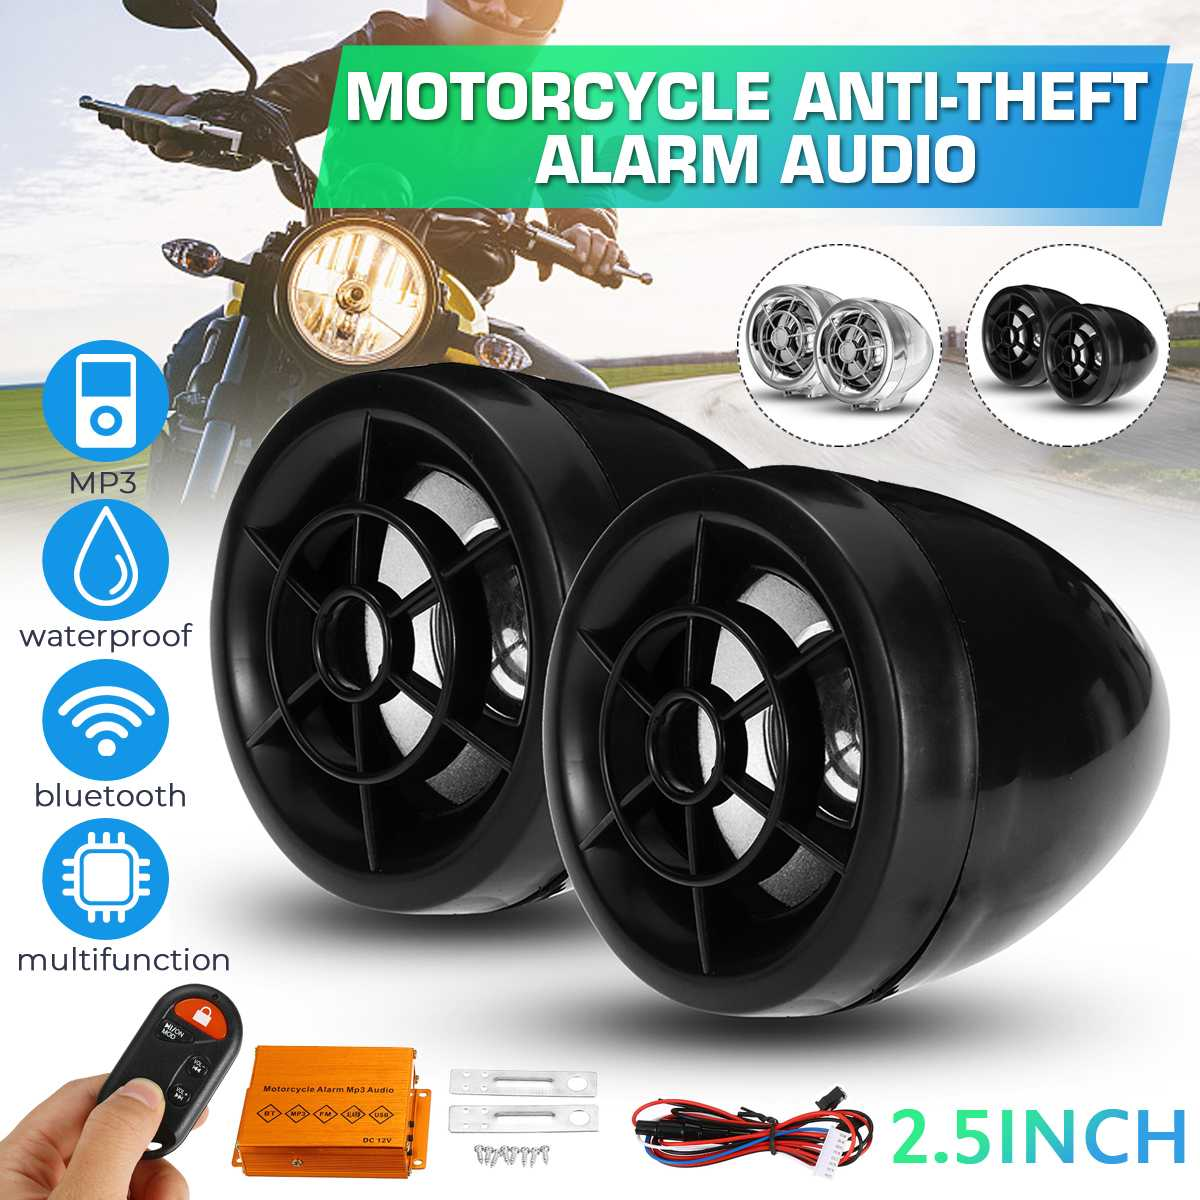 Motorcycle Audio Waterproof Anti-theft Alarm System Speaker FM Radio MP3 Player Music Amplifier with